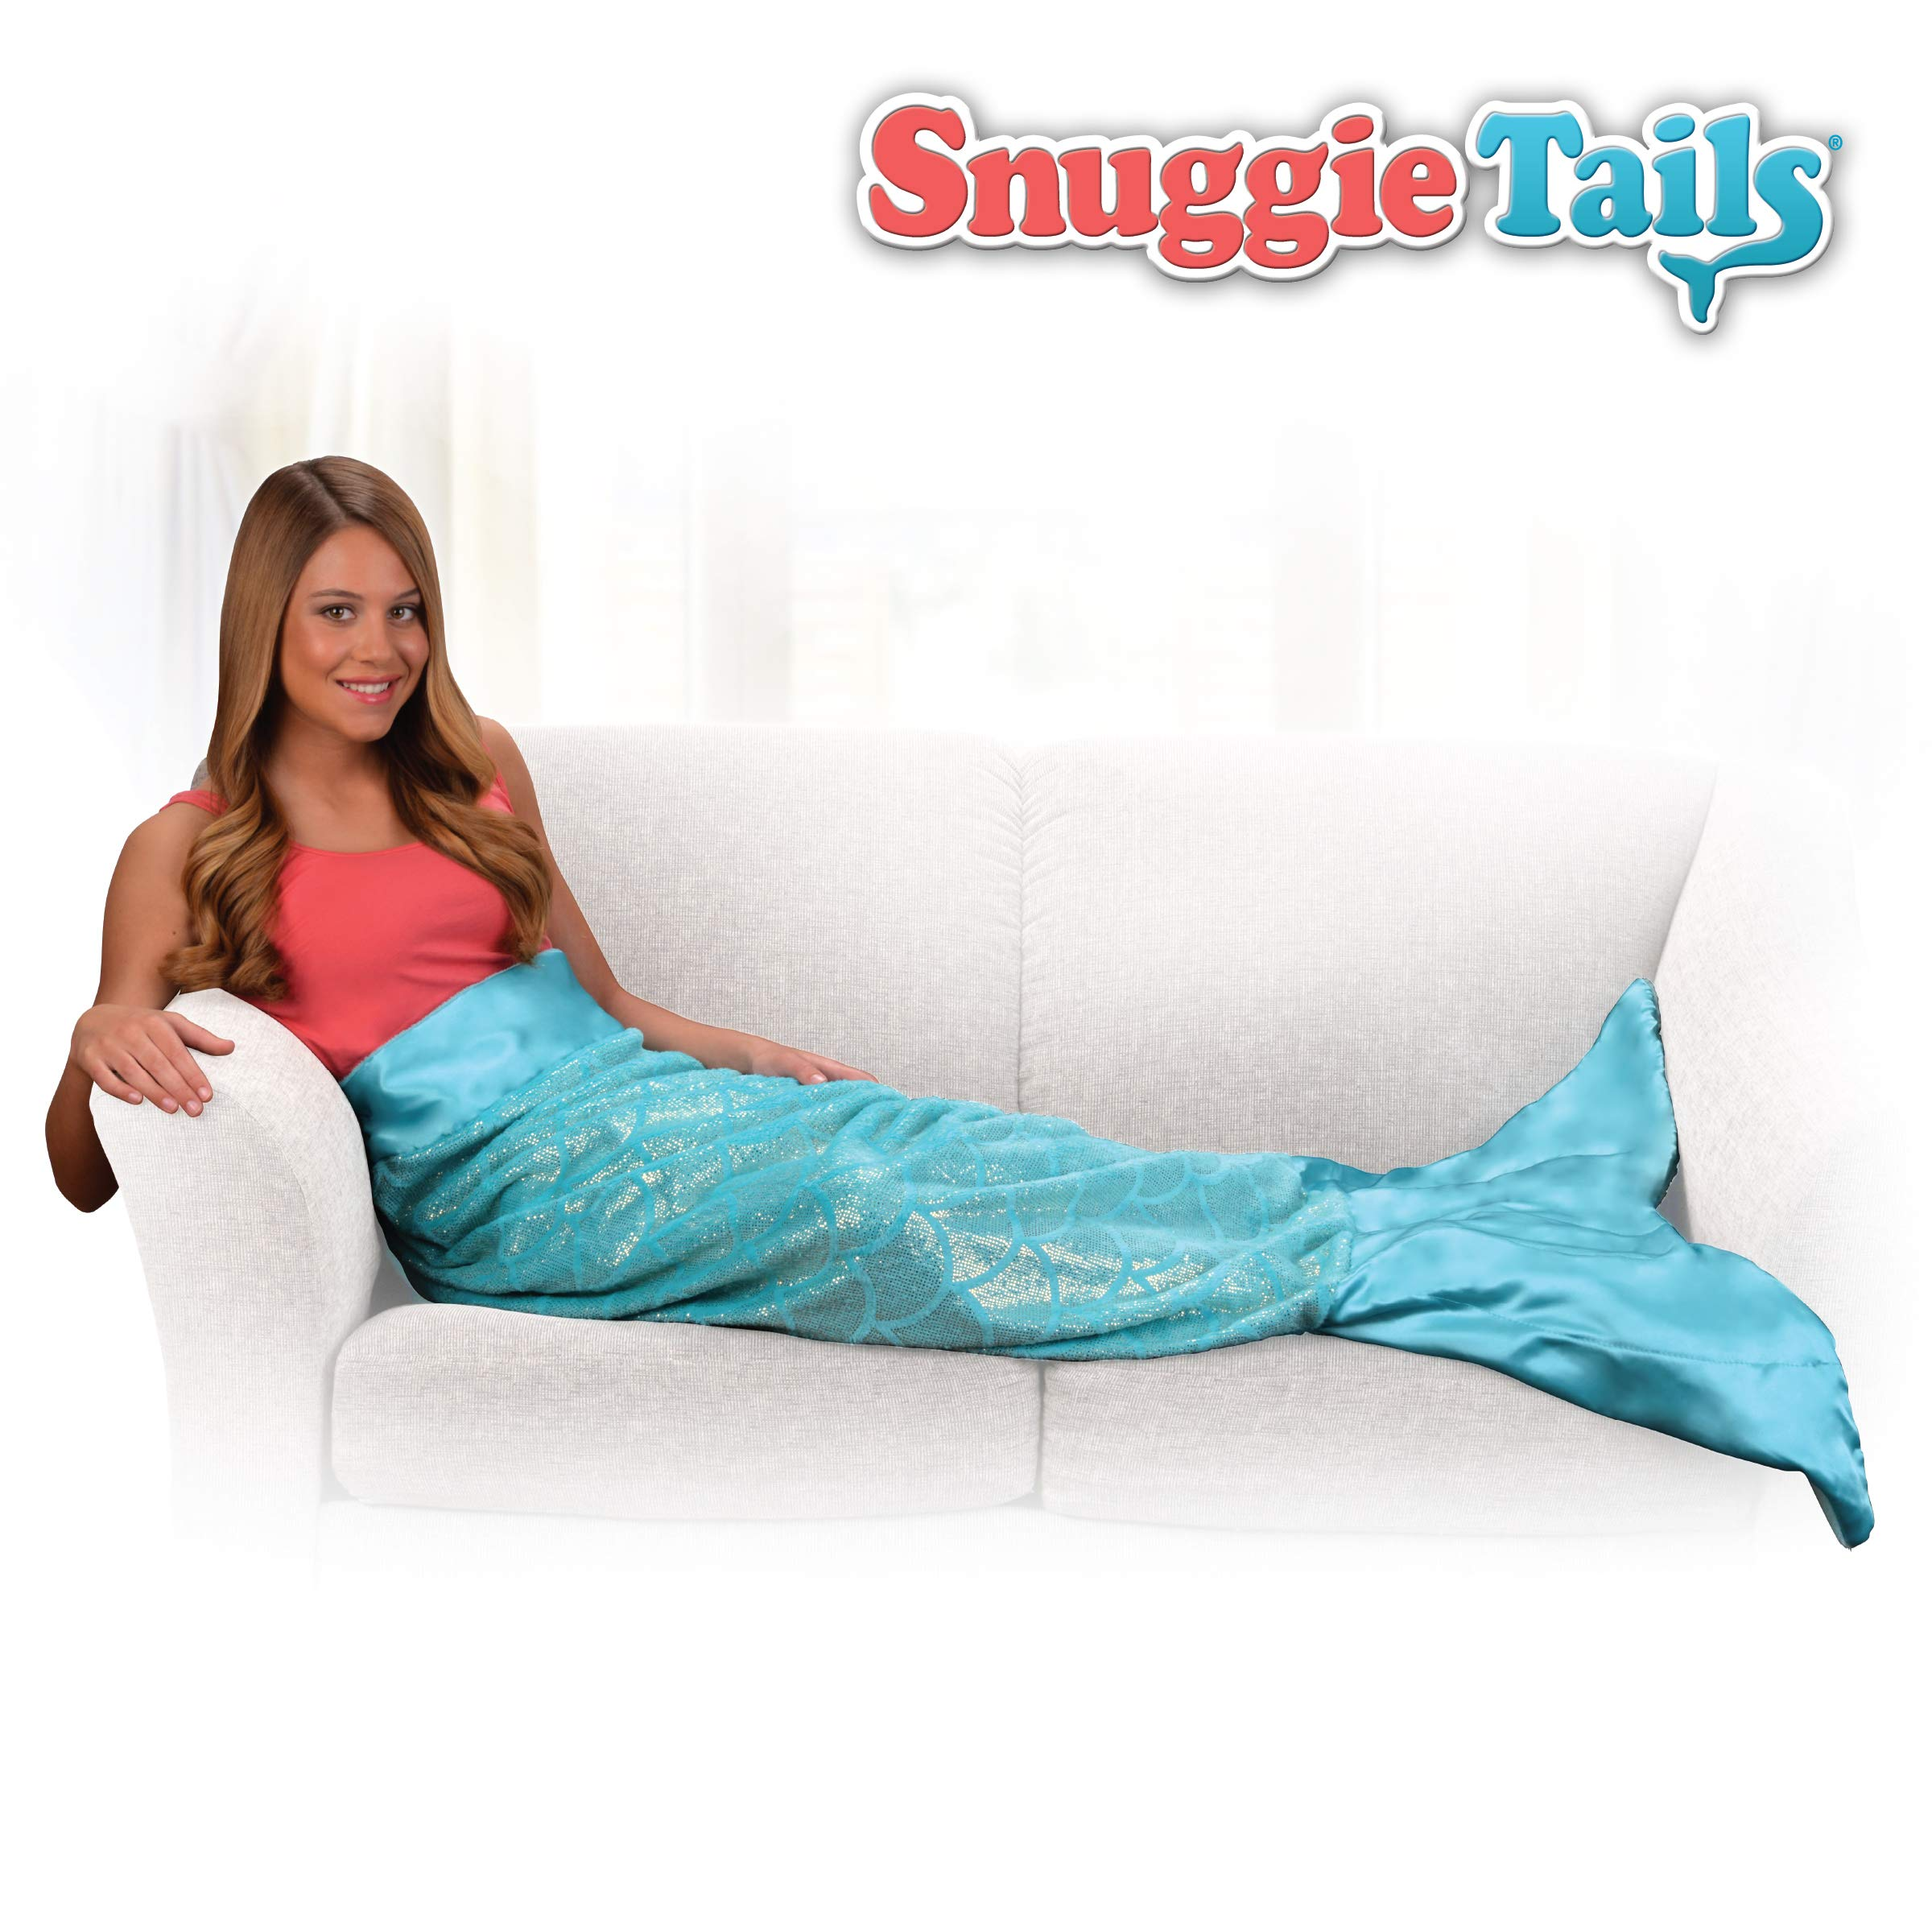 Snuggie Tails Mermaid Blanket- Comfy, Cozy, Super Soft, Warm, All Season, Wearable Blanket for Teens & Adults, As Seen on TV (Aqua Glitter) by Snuggie Tails